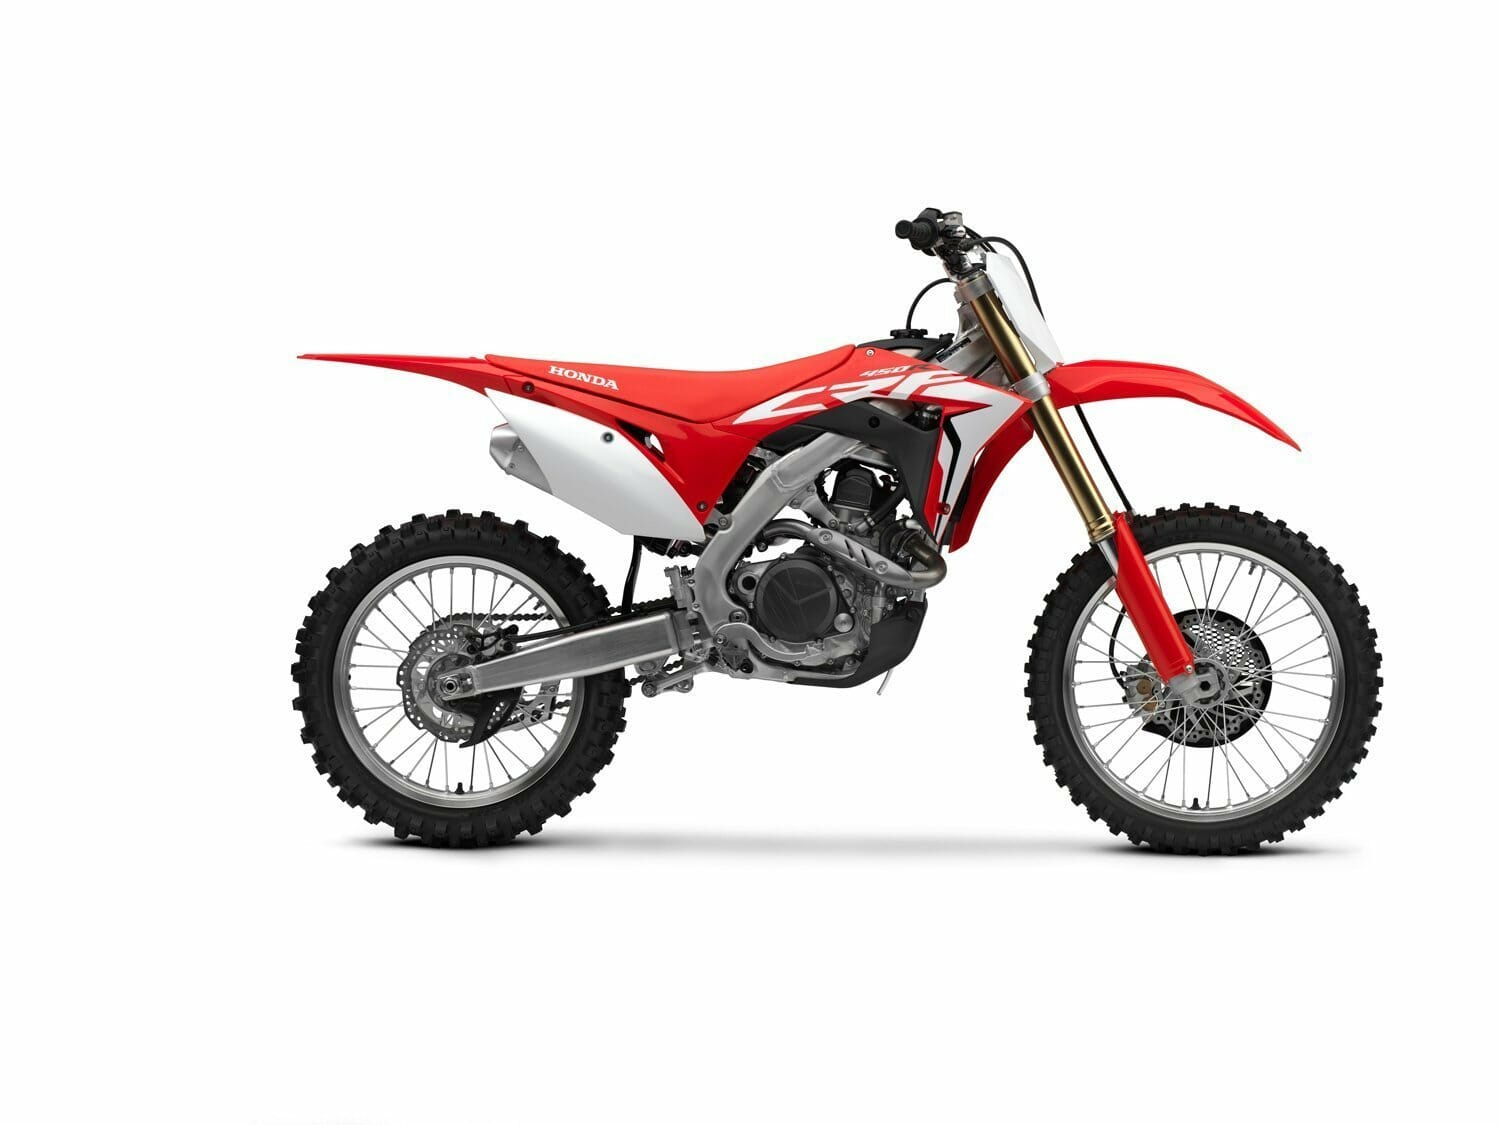 Honda Crf450r Model Care For 2018 Motorcyclesnews Motorcycle